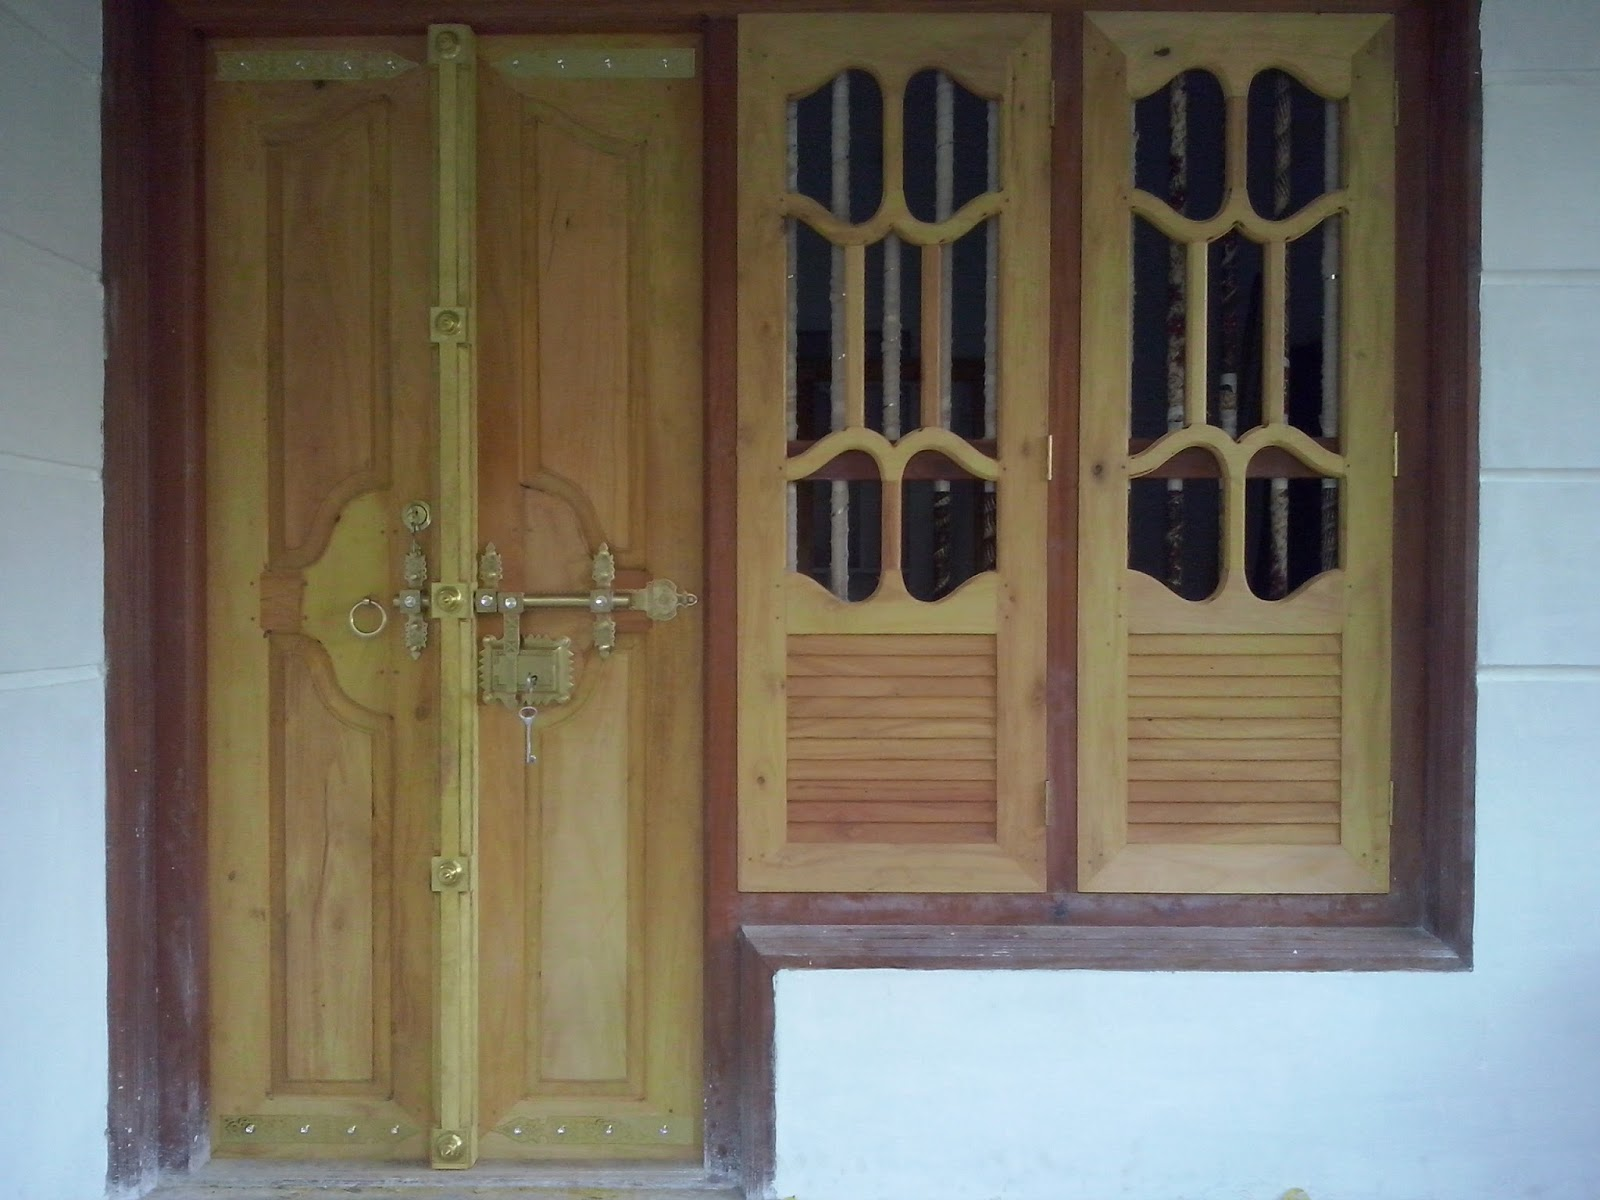 Wooden double door designs   Main entrance door with soothratti   Window  cum door with shutter type works. kerala style Carpenter works and designs  Kerala Style Wooden